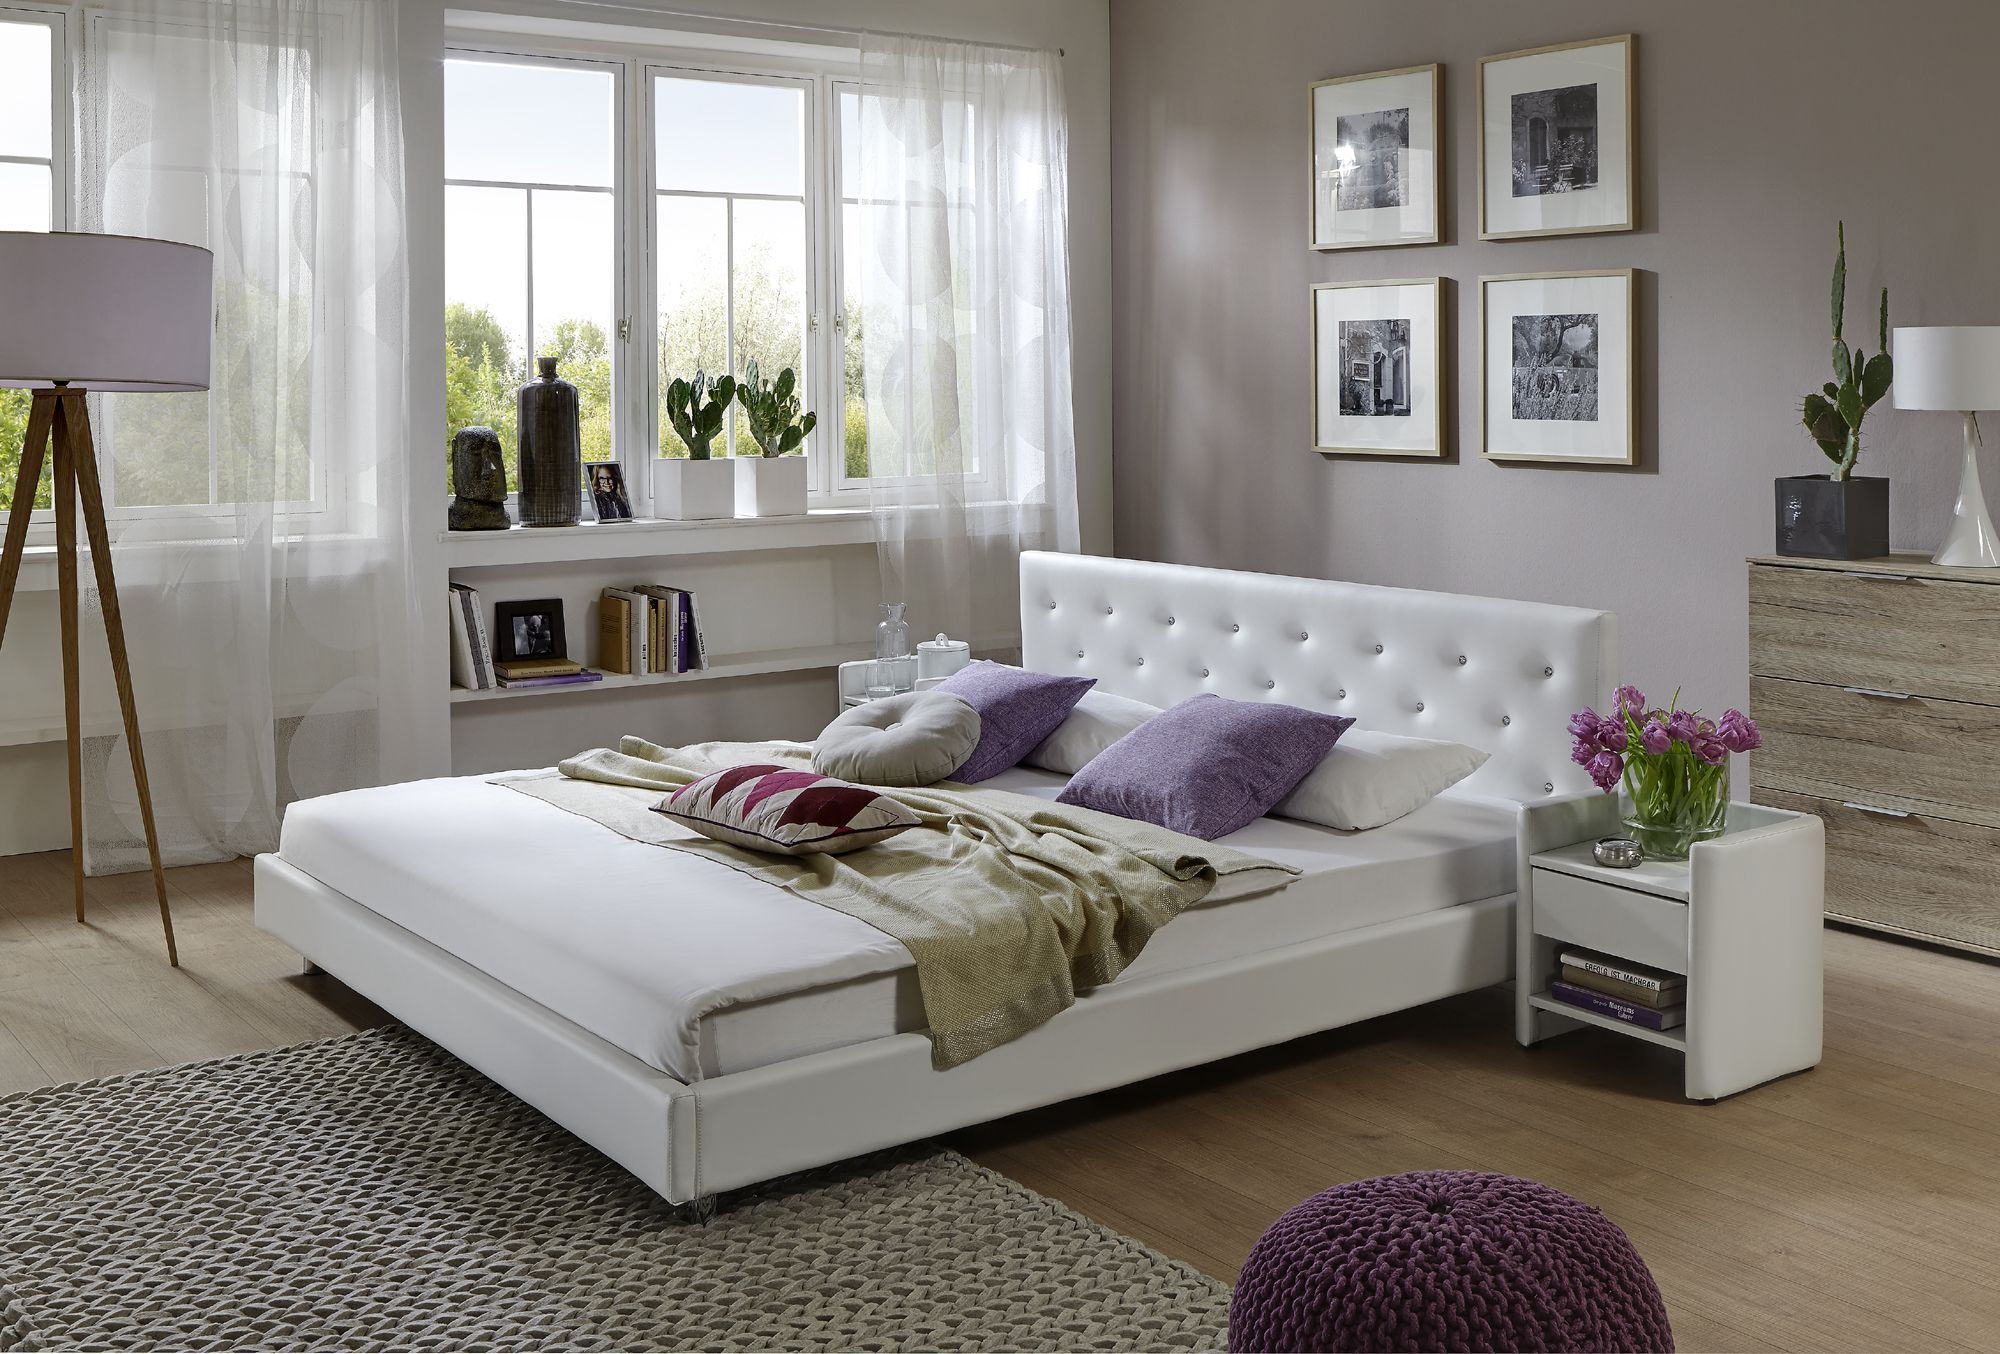 sam polsterbett 180 x 200 cm wei adonia schlafe gut mit sam pinterest wohnideen und. Black Bedroom Furniture Sets. Home Design Ideas